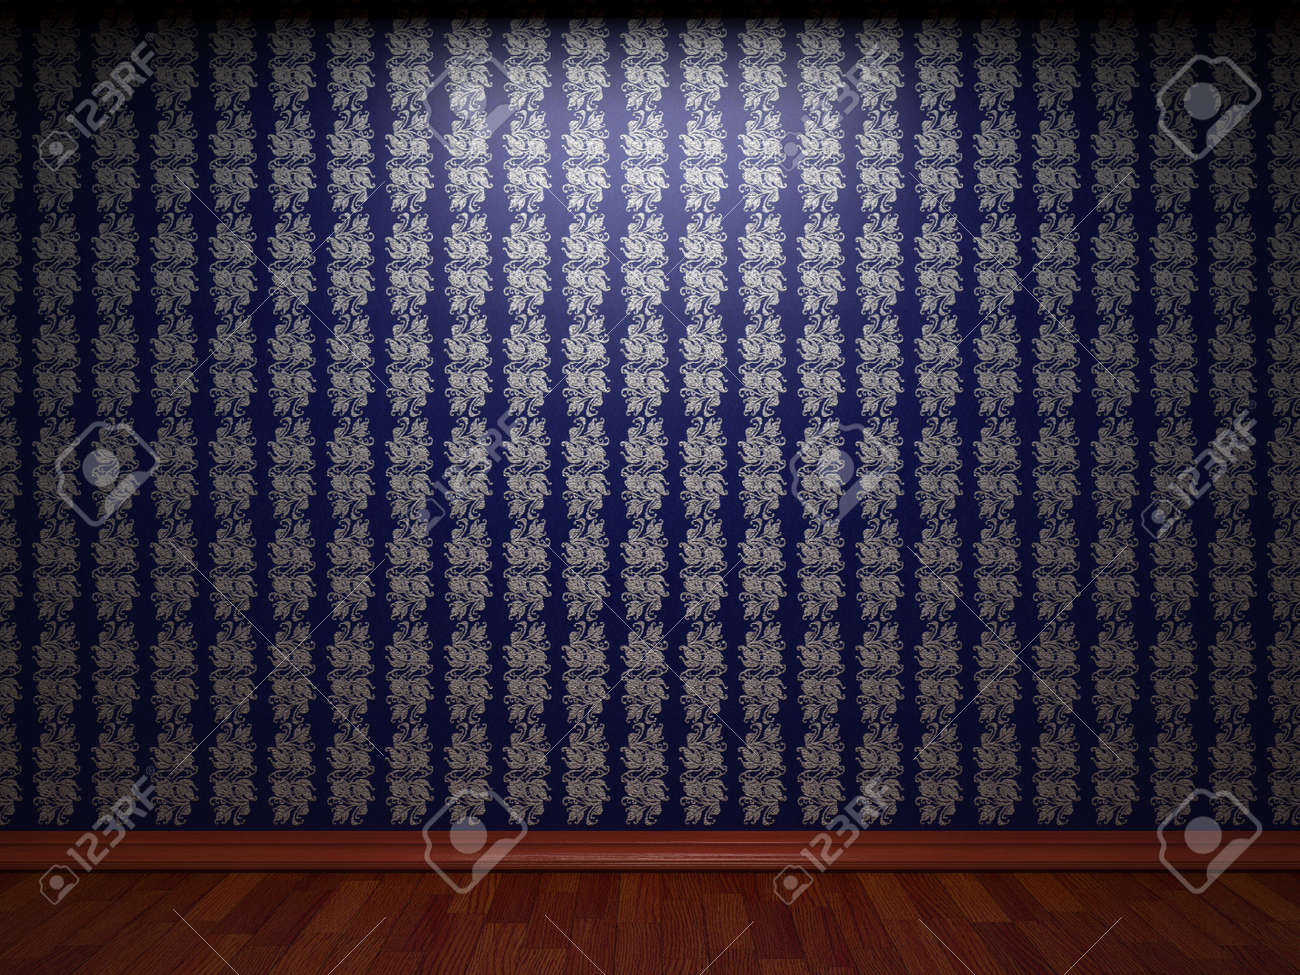 illuminated fabric wallpaper Stock Photo - 6692807